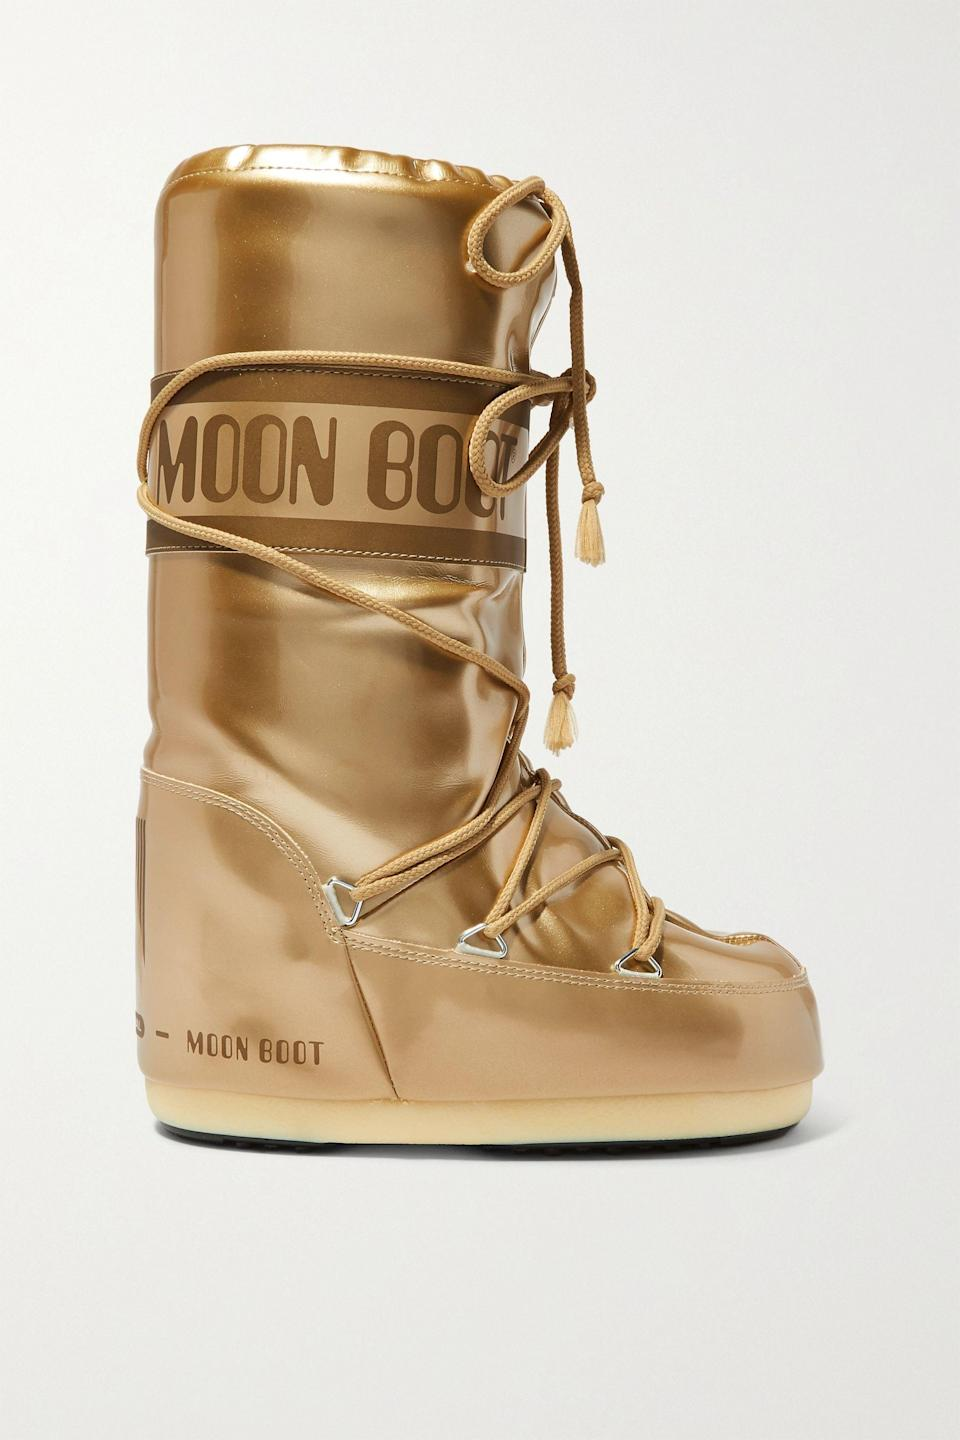 "<p><strong>Moon Boot</strong></p><p>net-a-porter.com</p><p><strong>$160.00</strong></p><p><a href=""https://go.redirectingat.com?id=74968X1596630&url=https%3A%2F%2Fwww.net-a-porter.com%2Fen-us%2Fshop%2Fproduct%2Fmoon-boot%2Fglance-metallic-shell-and-rubber-snow-boots%2F1164179&sref=https%3A%2F%2Fwww.townandcountrymag.com%2Fstyle%2Ffashion-trends%2Fg13532208%2Fwhat-to-wear-skiing%2F"" rel=""nofollow noopener"" target=""_blank"" data-ylk=""slk:Shop Now"" class=""link rapid-noclick-resp"">Shop Now</a></p><p>How fun are these metallic moon boots?</p>"